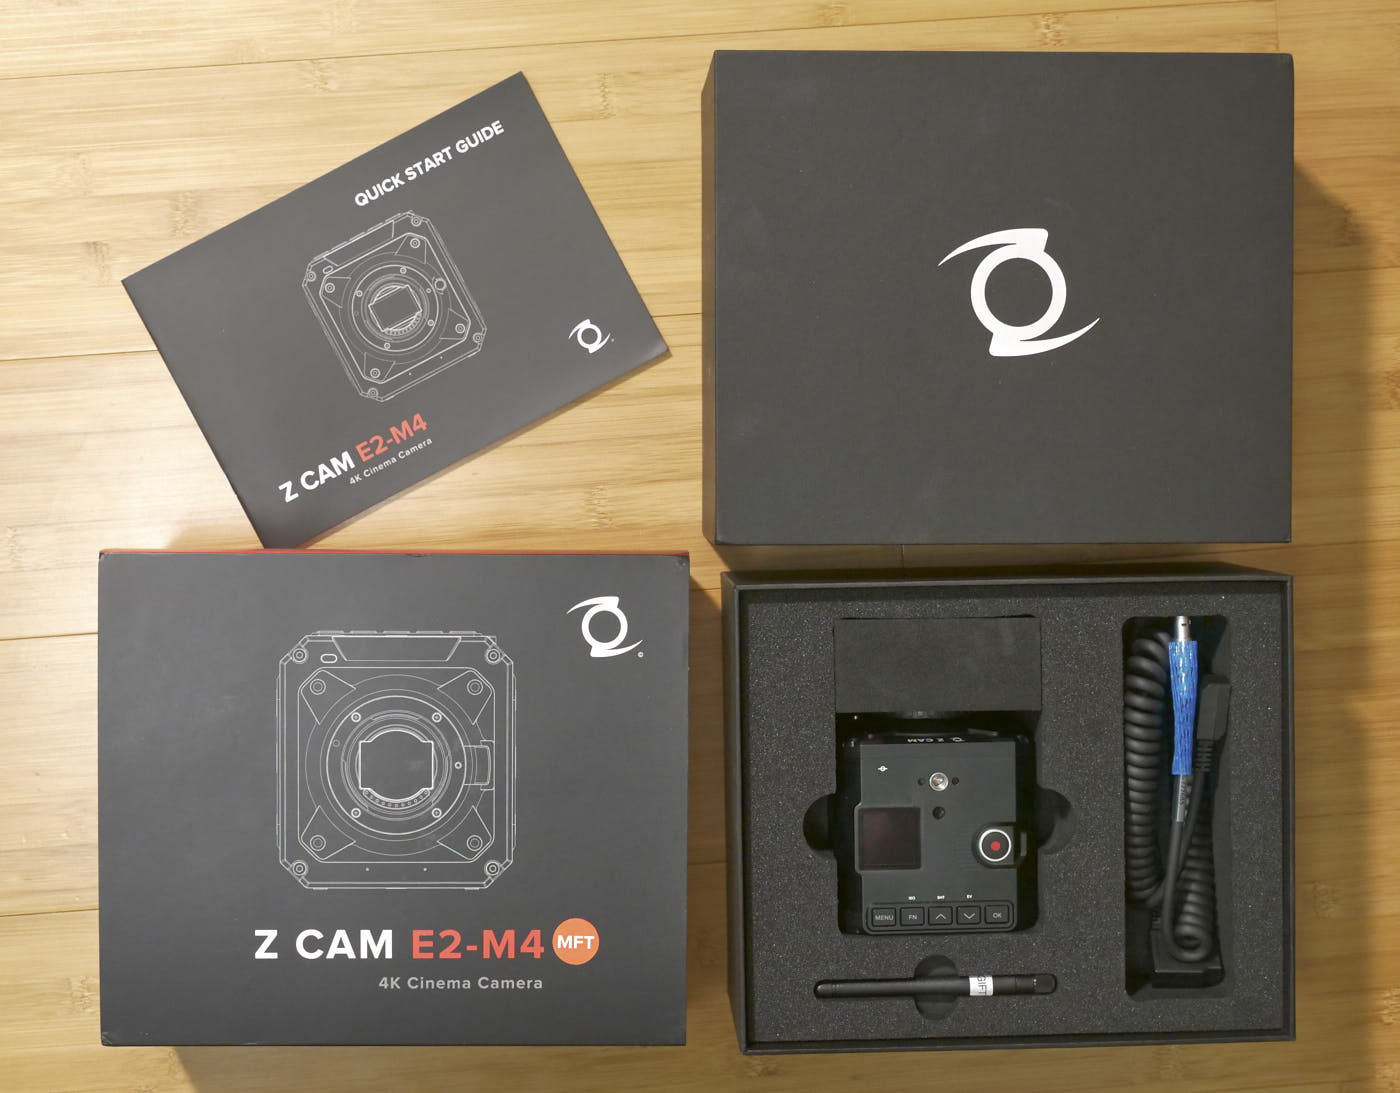 Z Cam E2-M4, as delivered